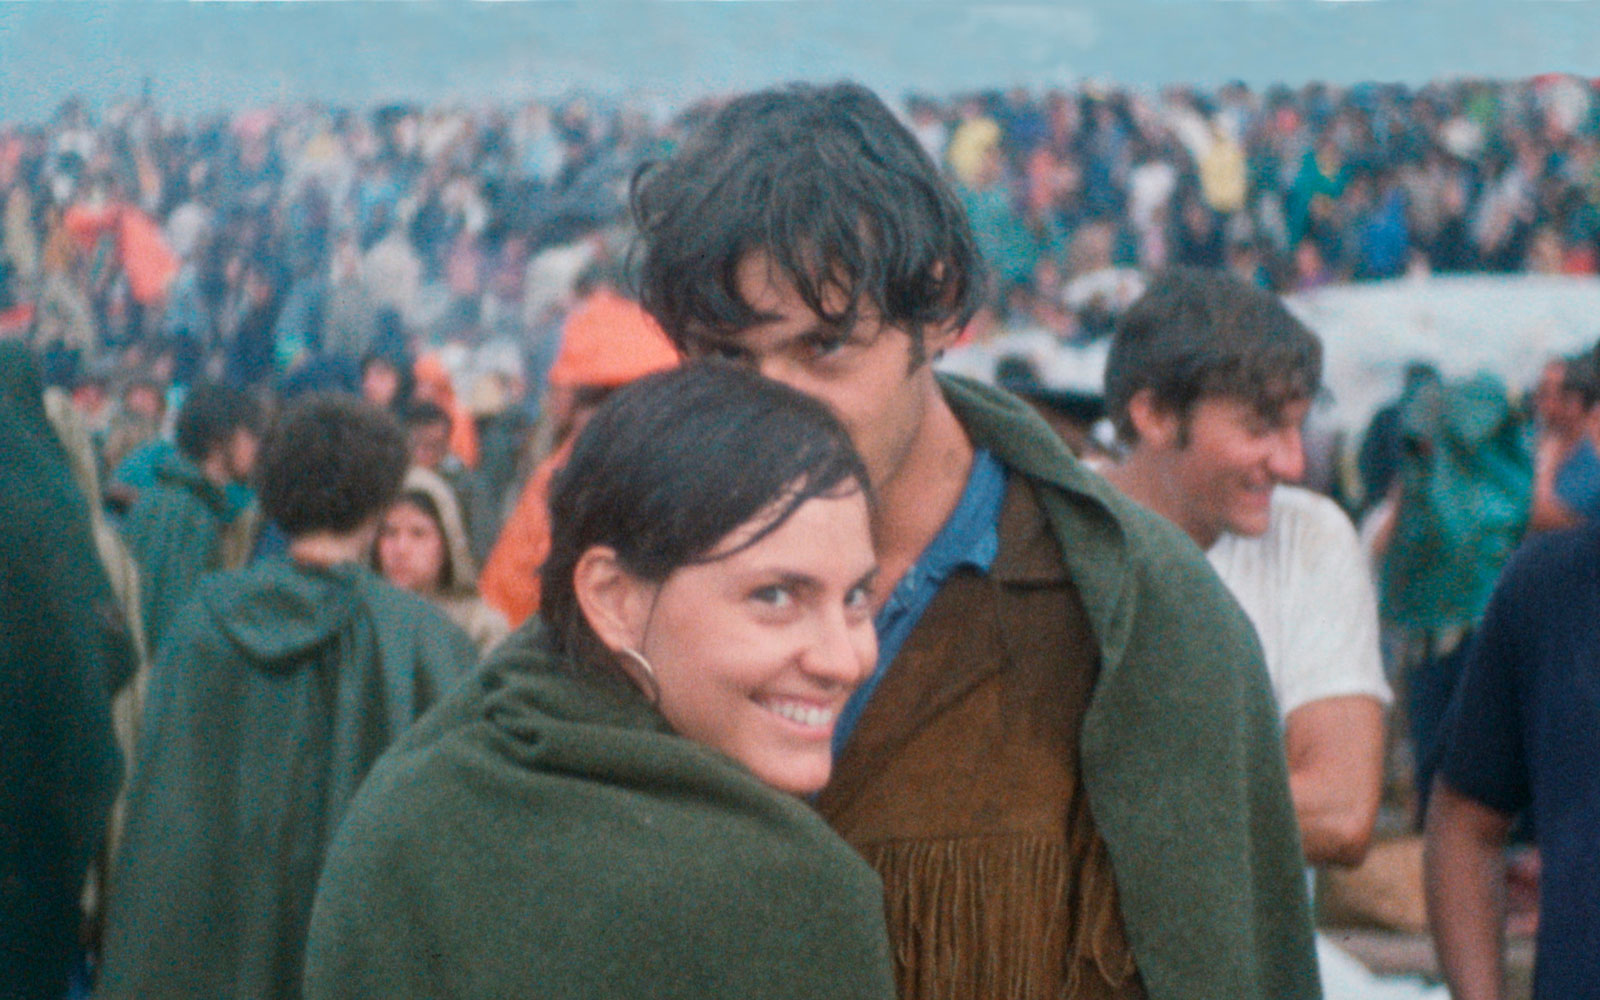 50 Years After They Met at Woodstock, Couple Finally Finds a Photo of Their First Hours Together